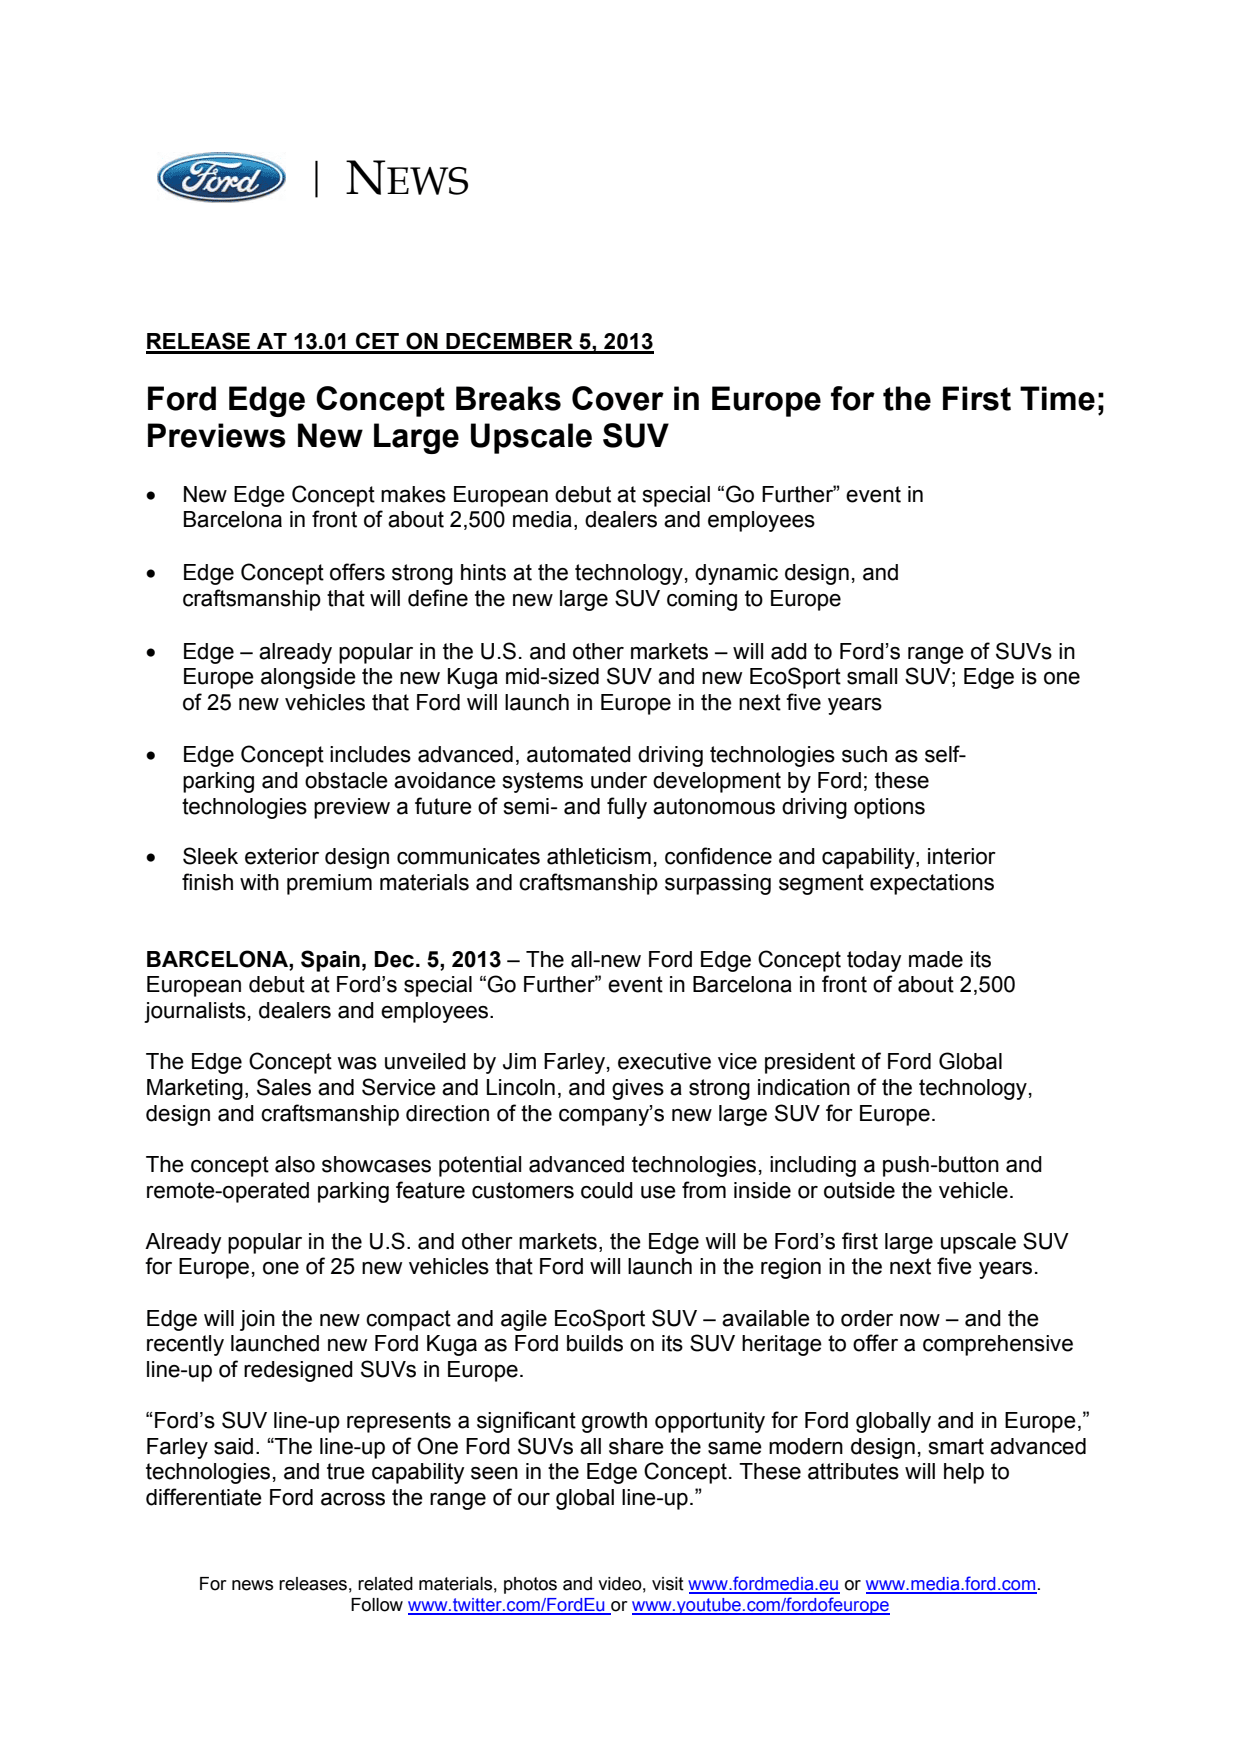 Ford edge international press release ford motor company Ford motor company press release